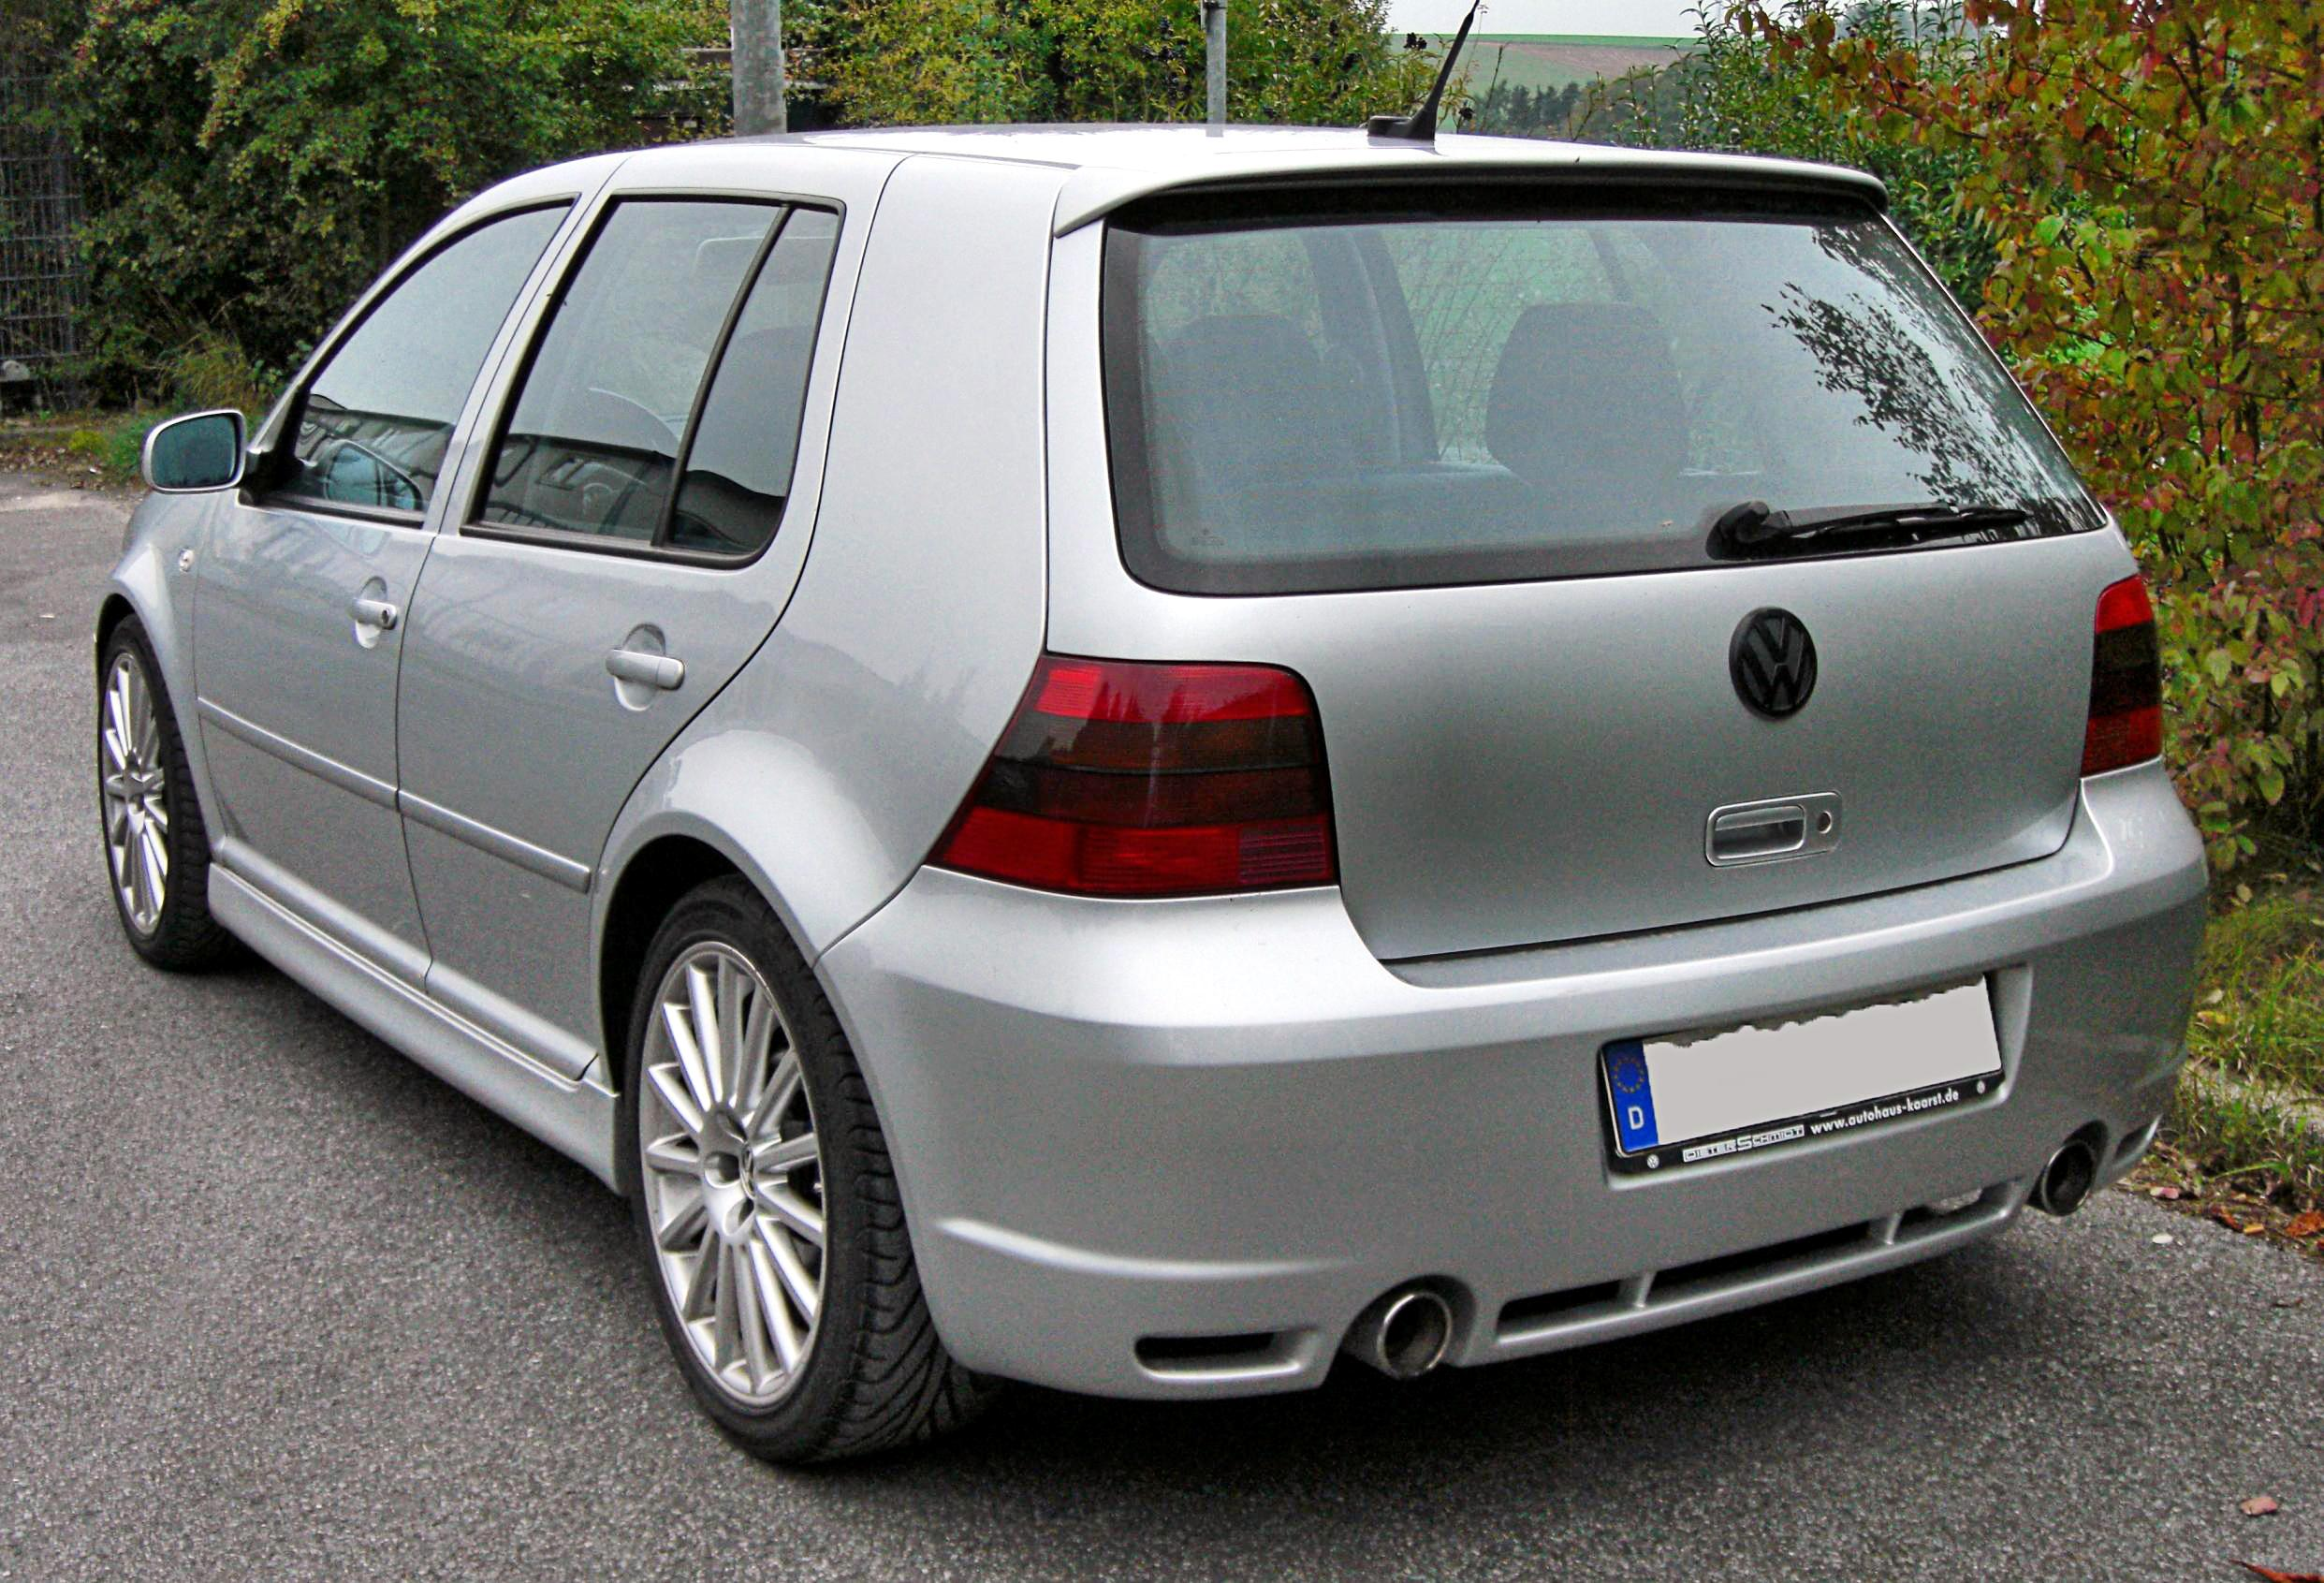 file vw golf iv r32 20090916 wikipedia. Black Bedroom Furniture Sets. Home Design Ideas